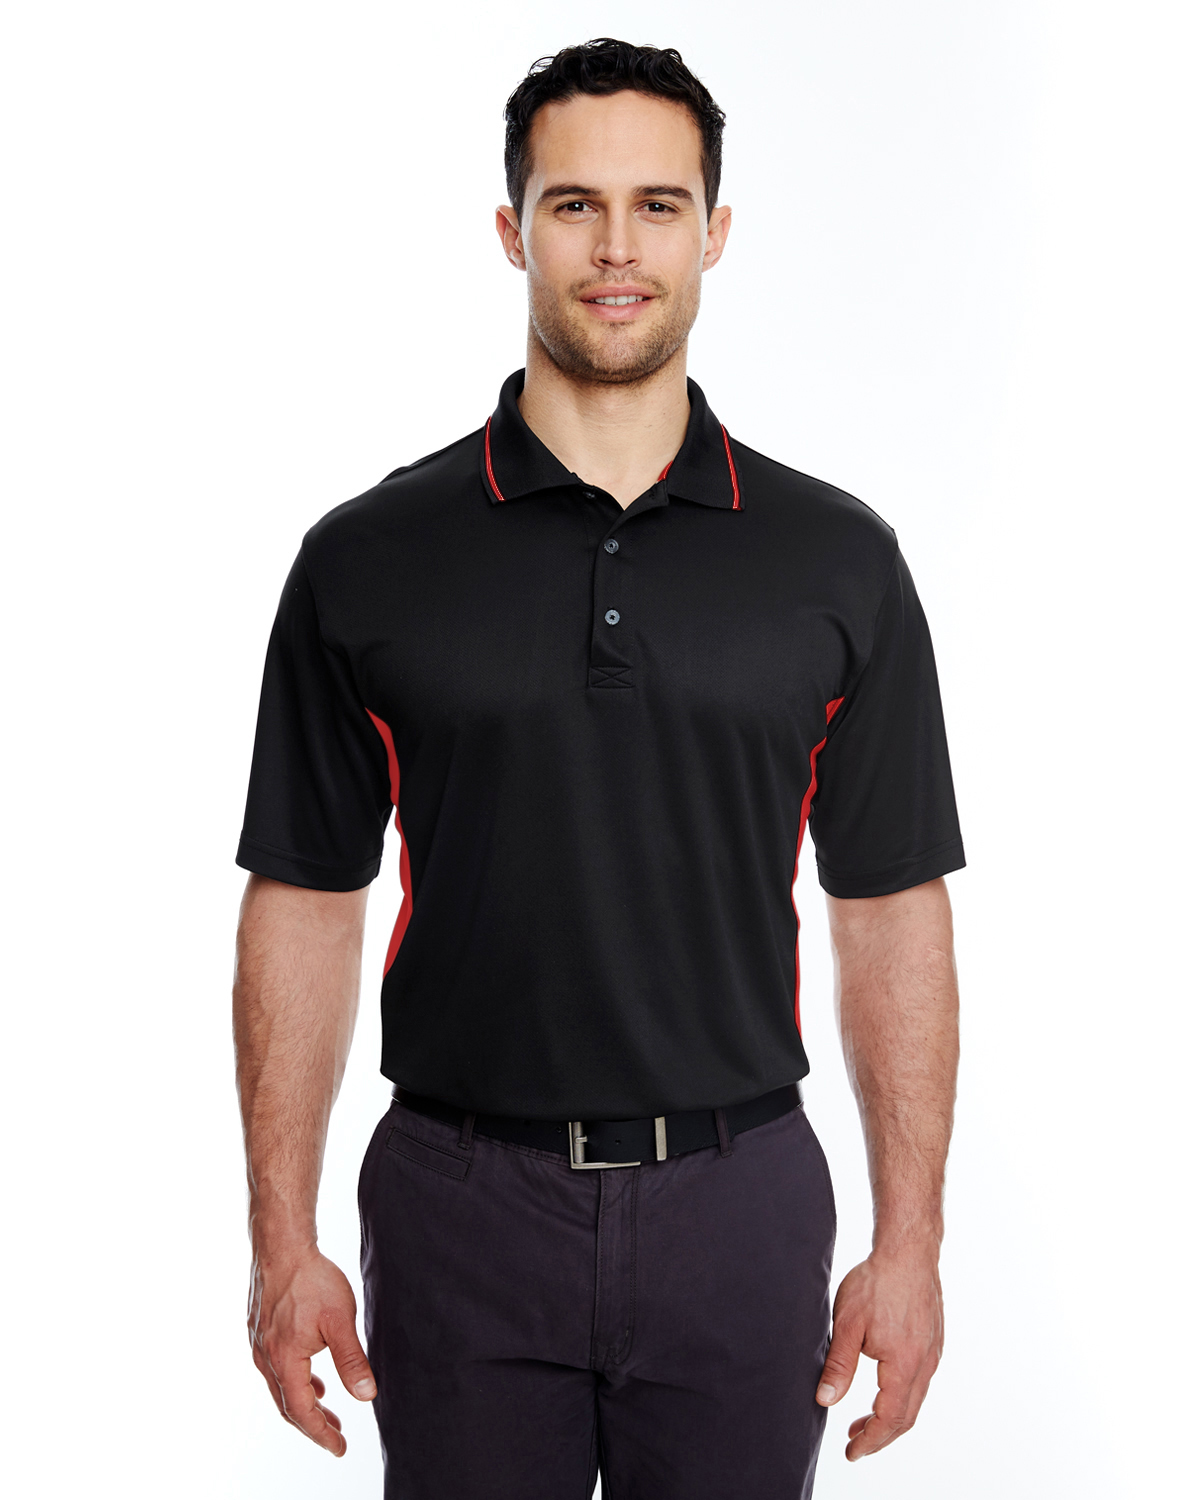 a8de1847 8406 UltraClub Adult Cool & Dry Sport Two-Tone Polo $17.09 - T Shirts